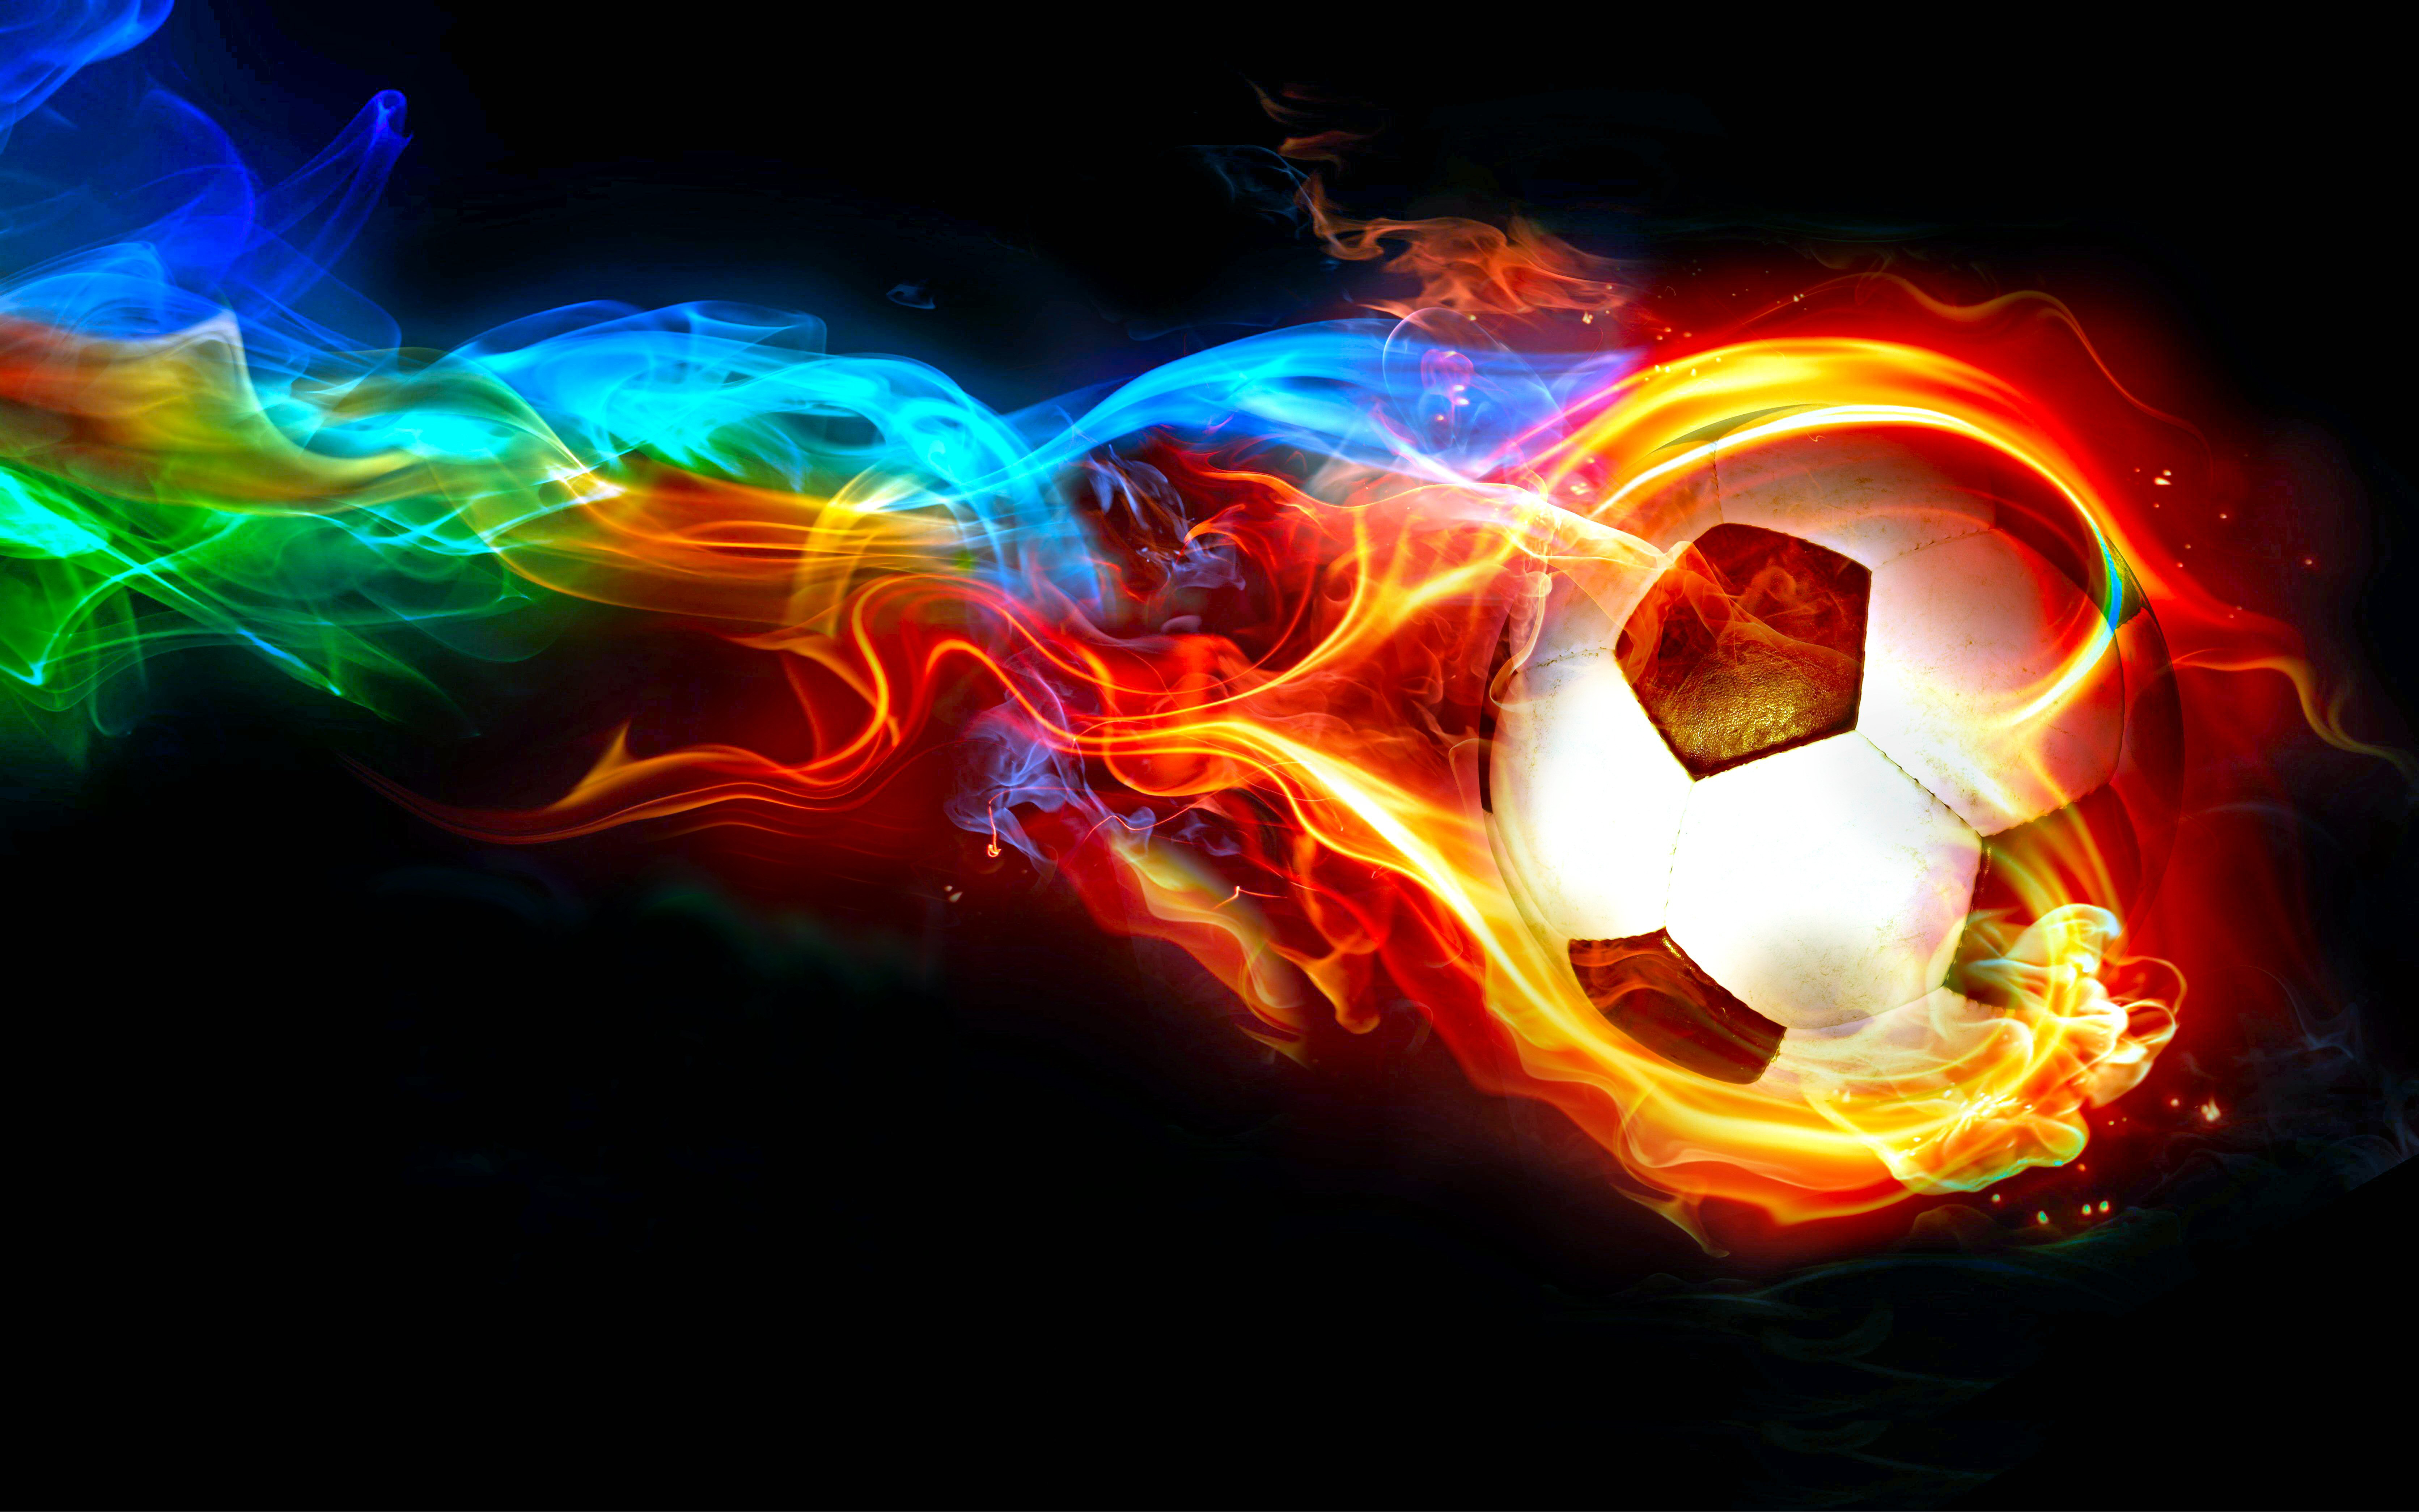 6686x4179 - Soccer Wallpapers 22